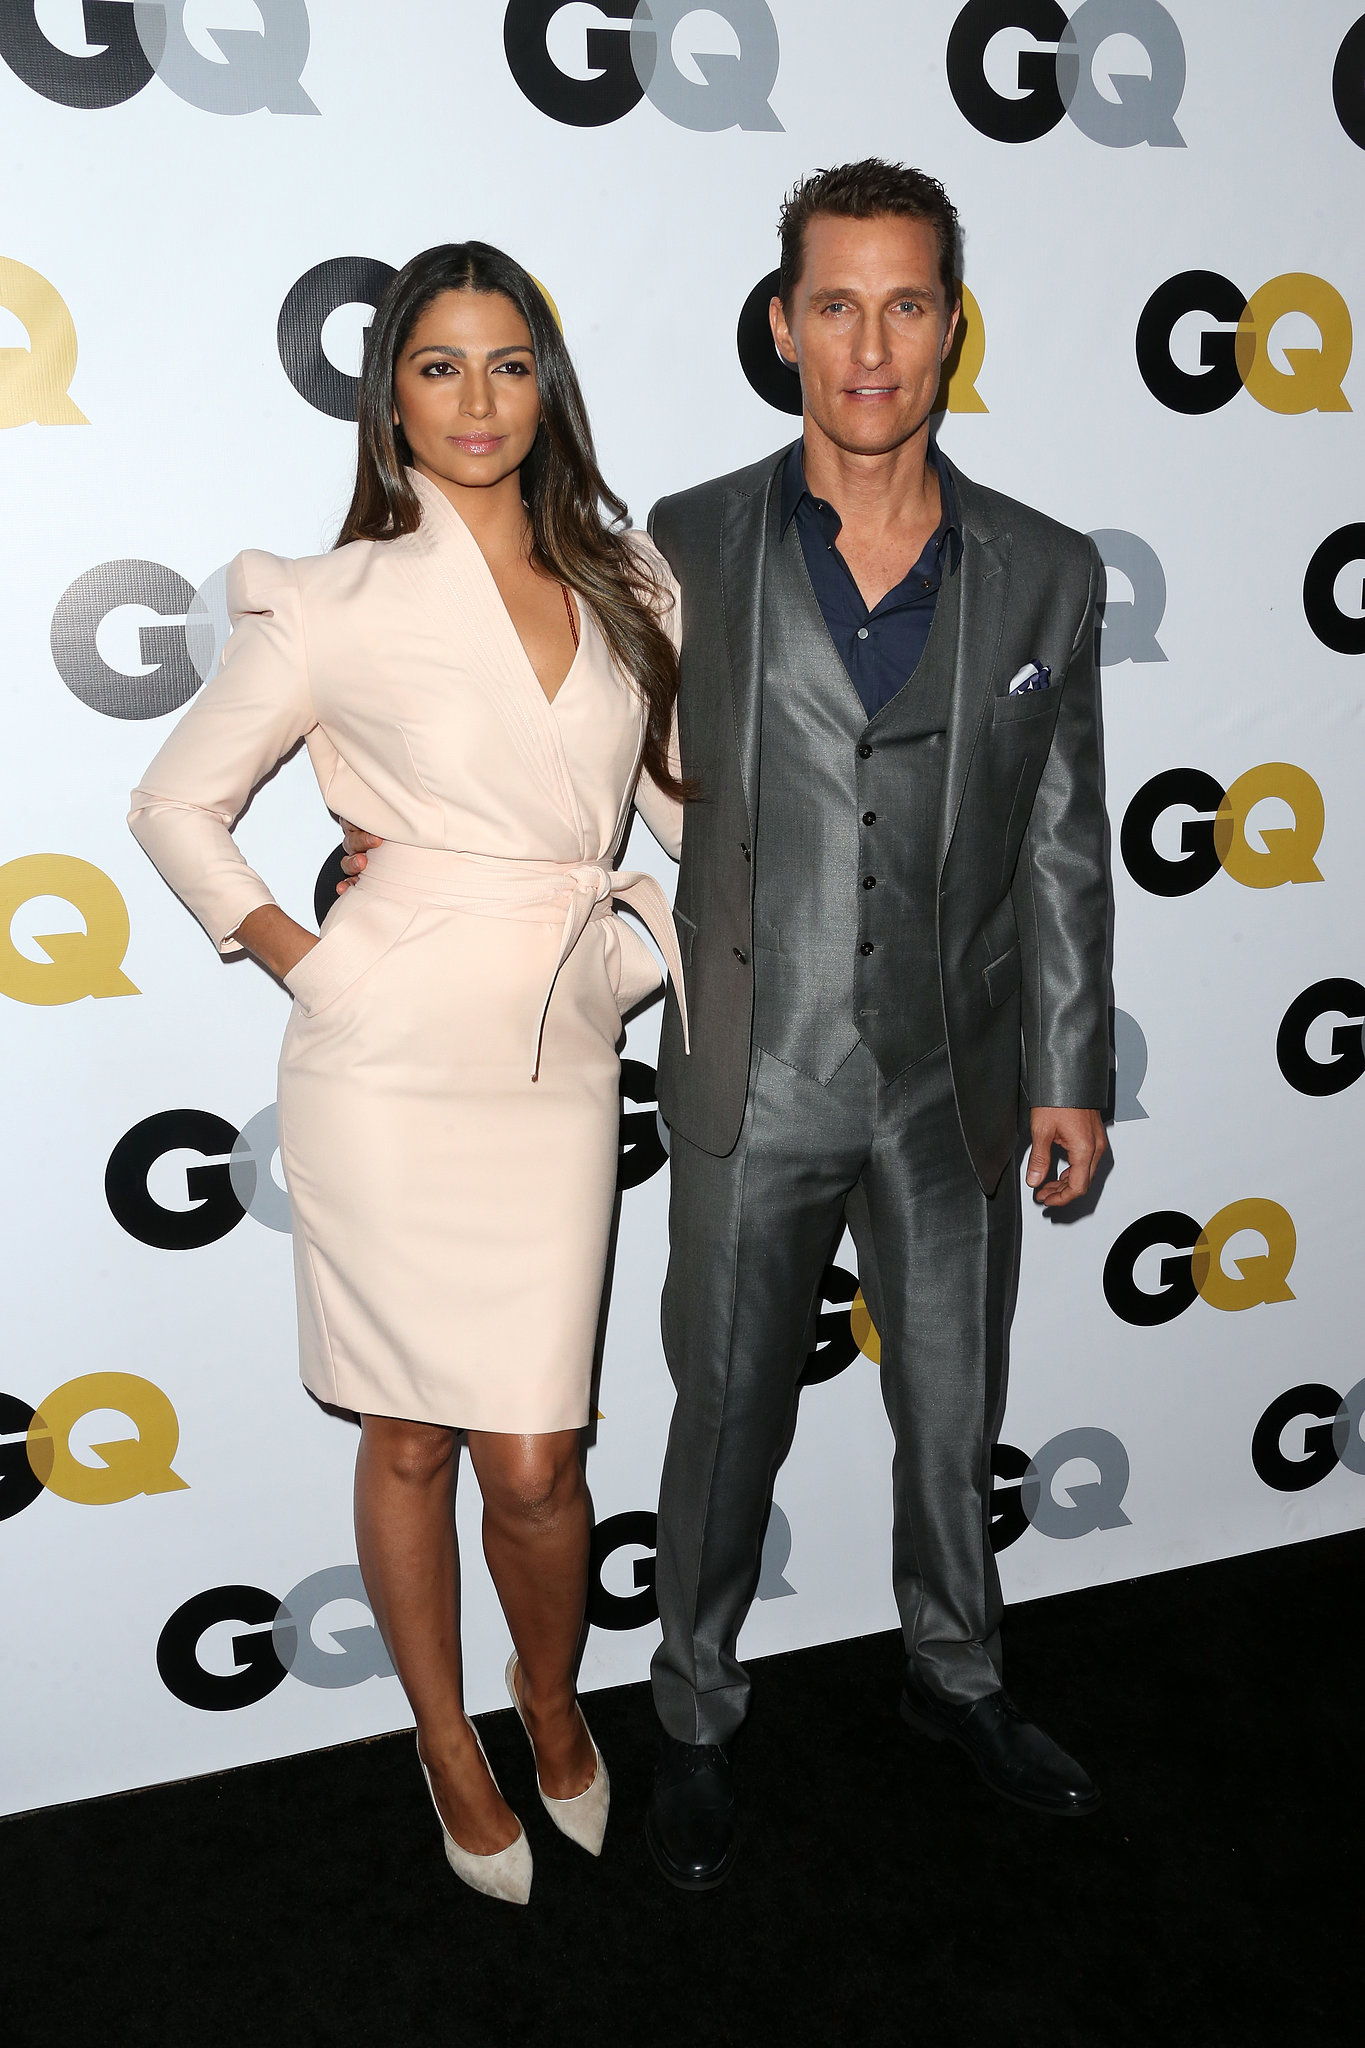 Matthew McConaughey and Camila Alves hit the red carpet together for the GQ Men of the Year party.